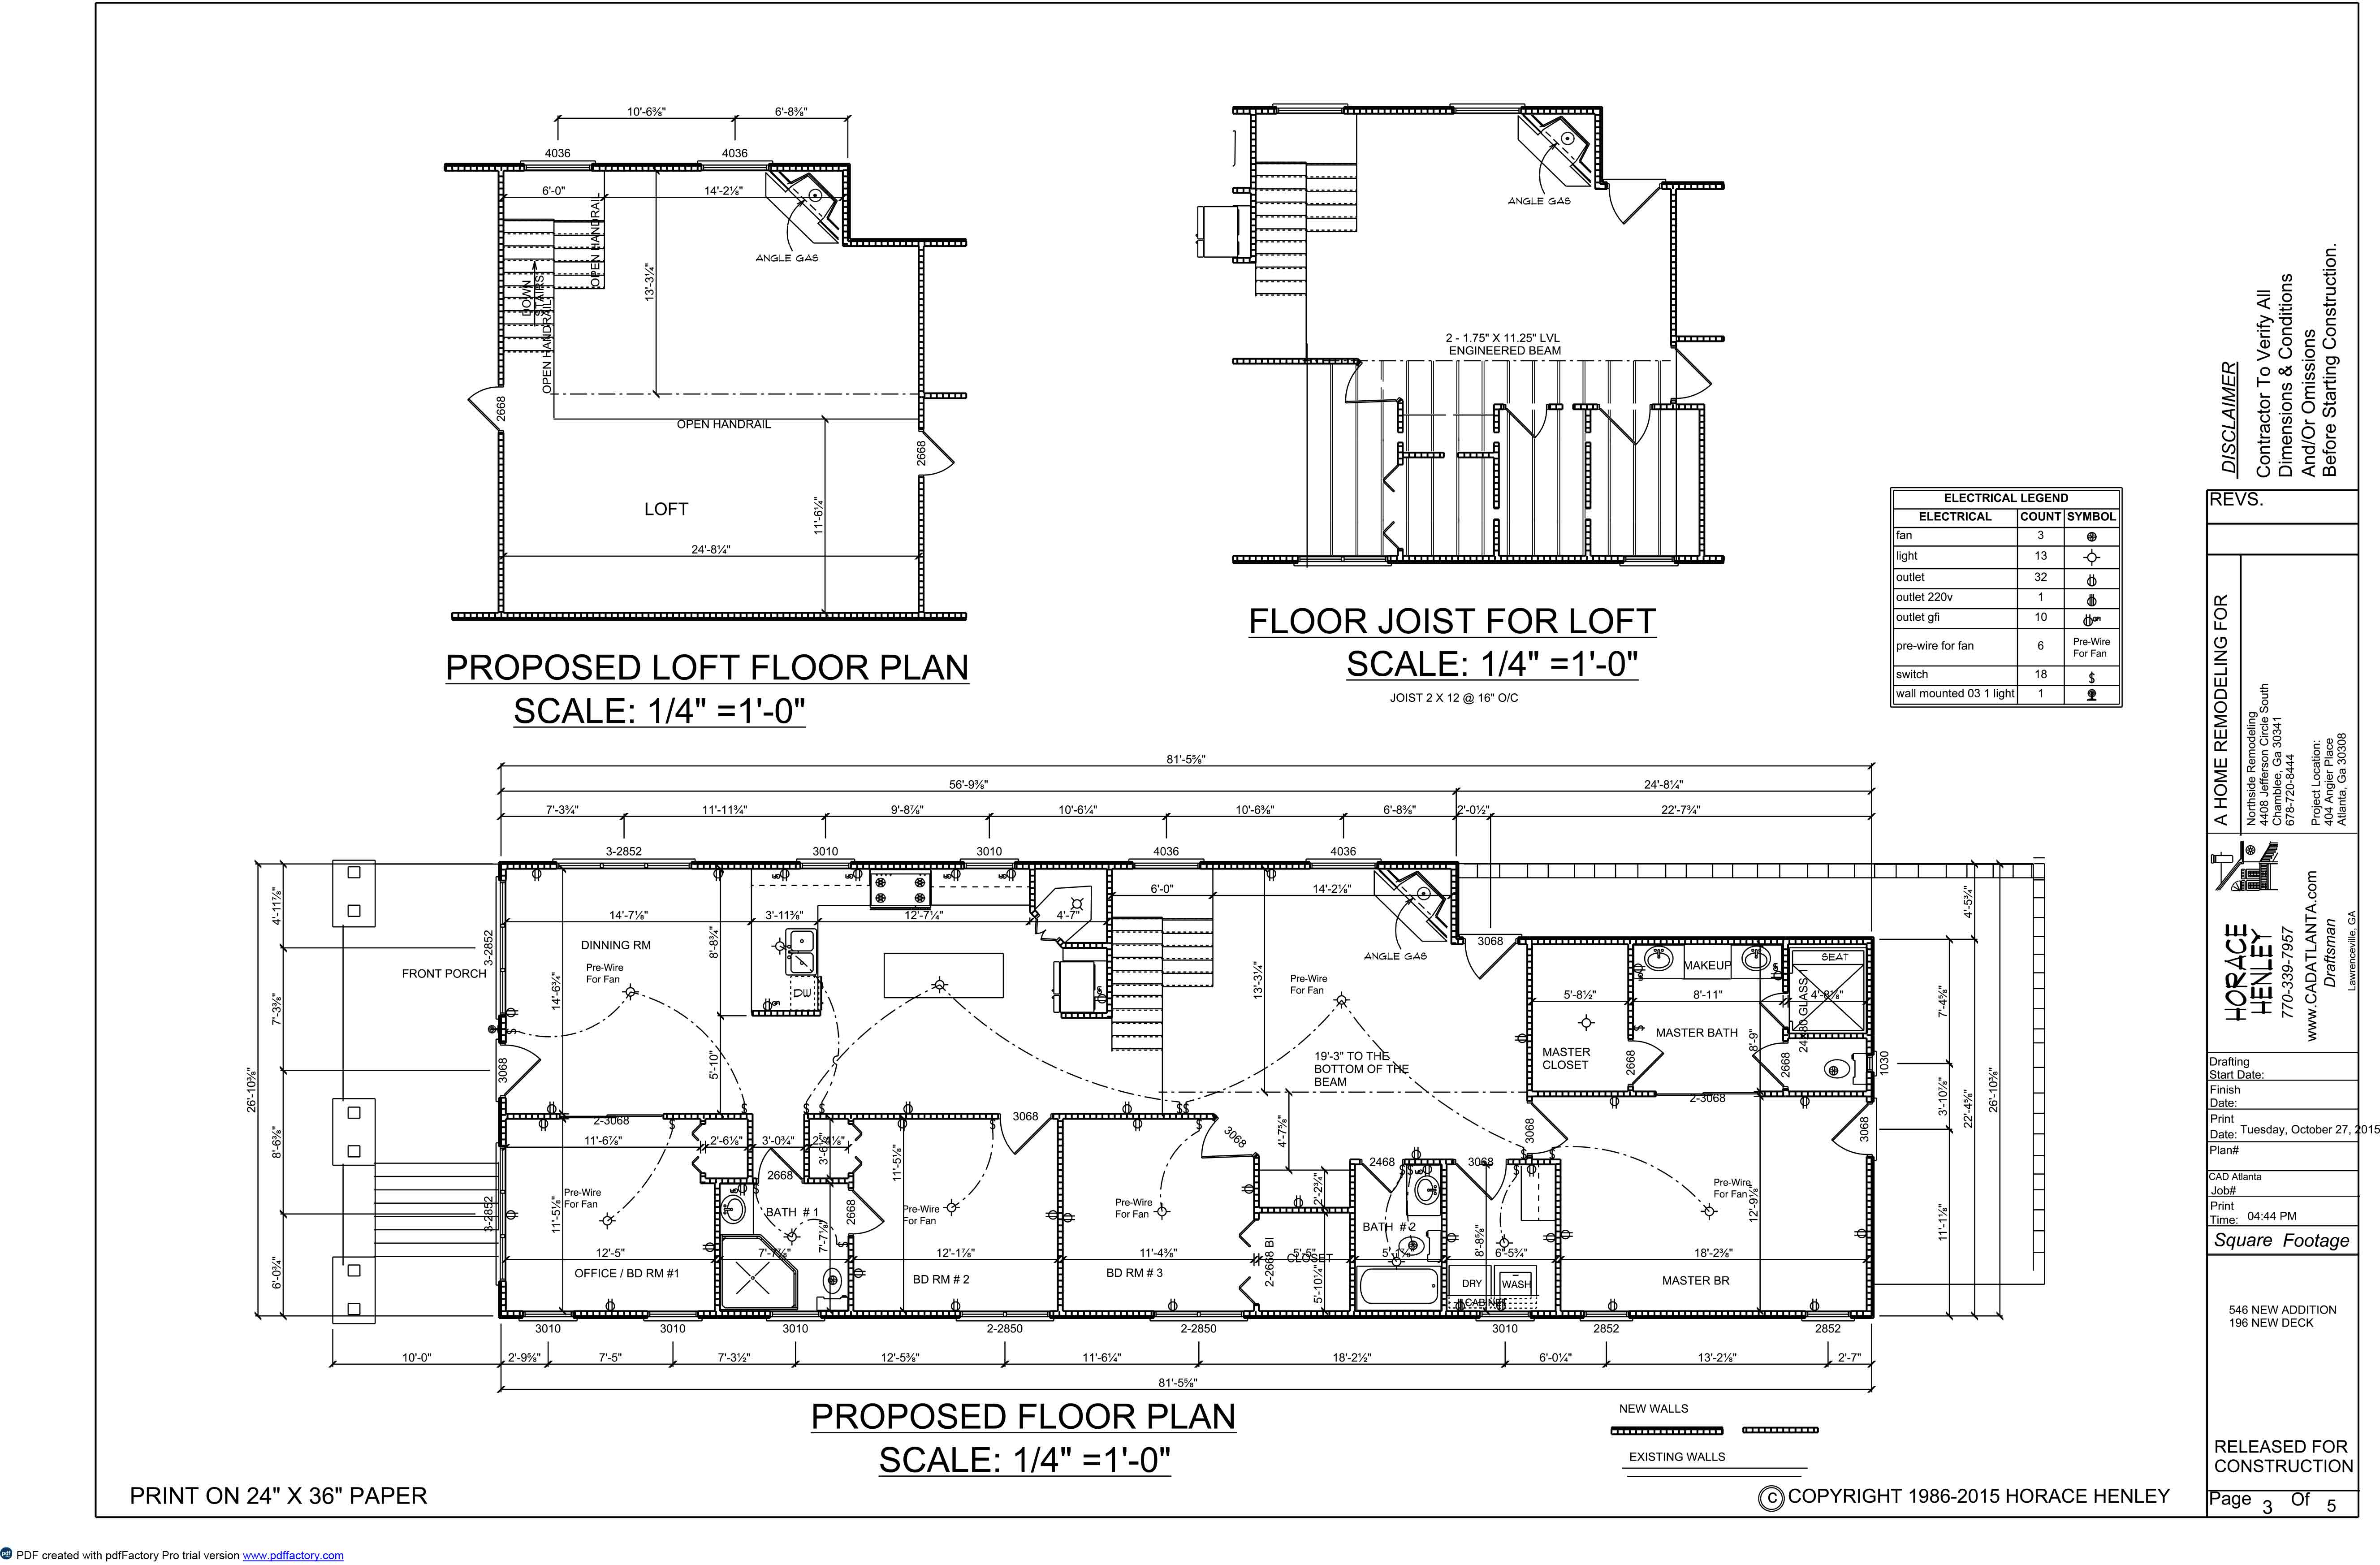 Cad Atlanta Legend Of Electrical Plan Before And After Pictures My Work Are At The Bottom This Page Thanks